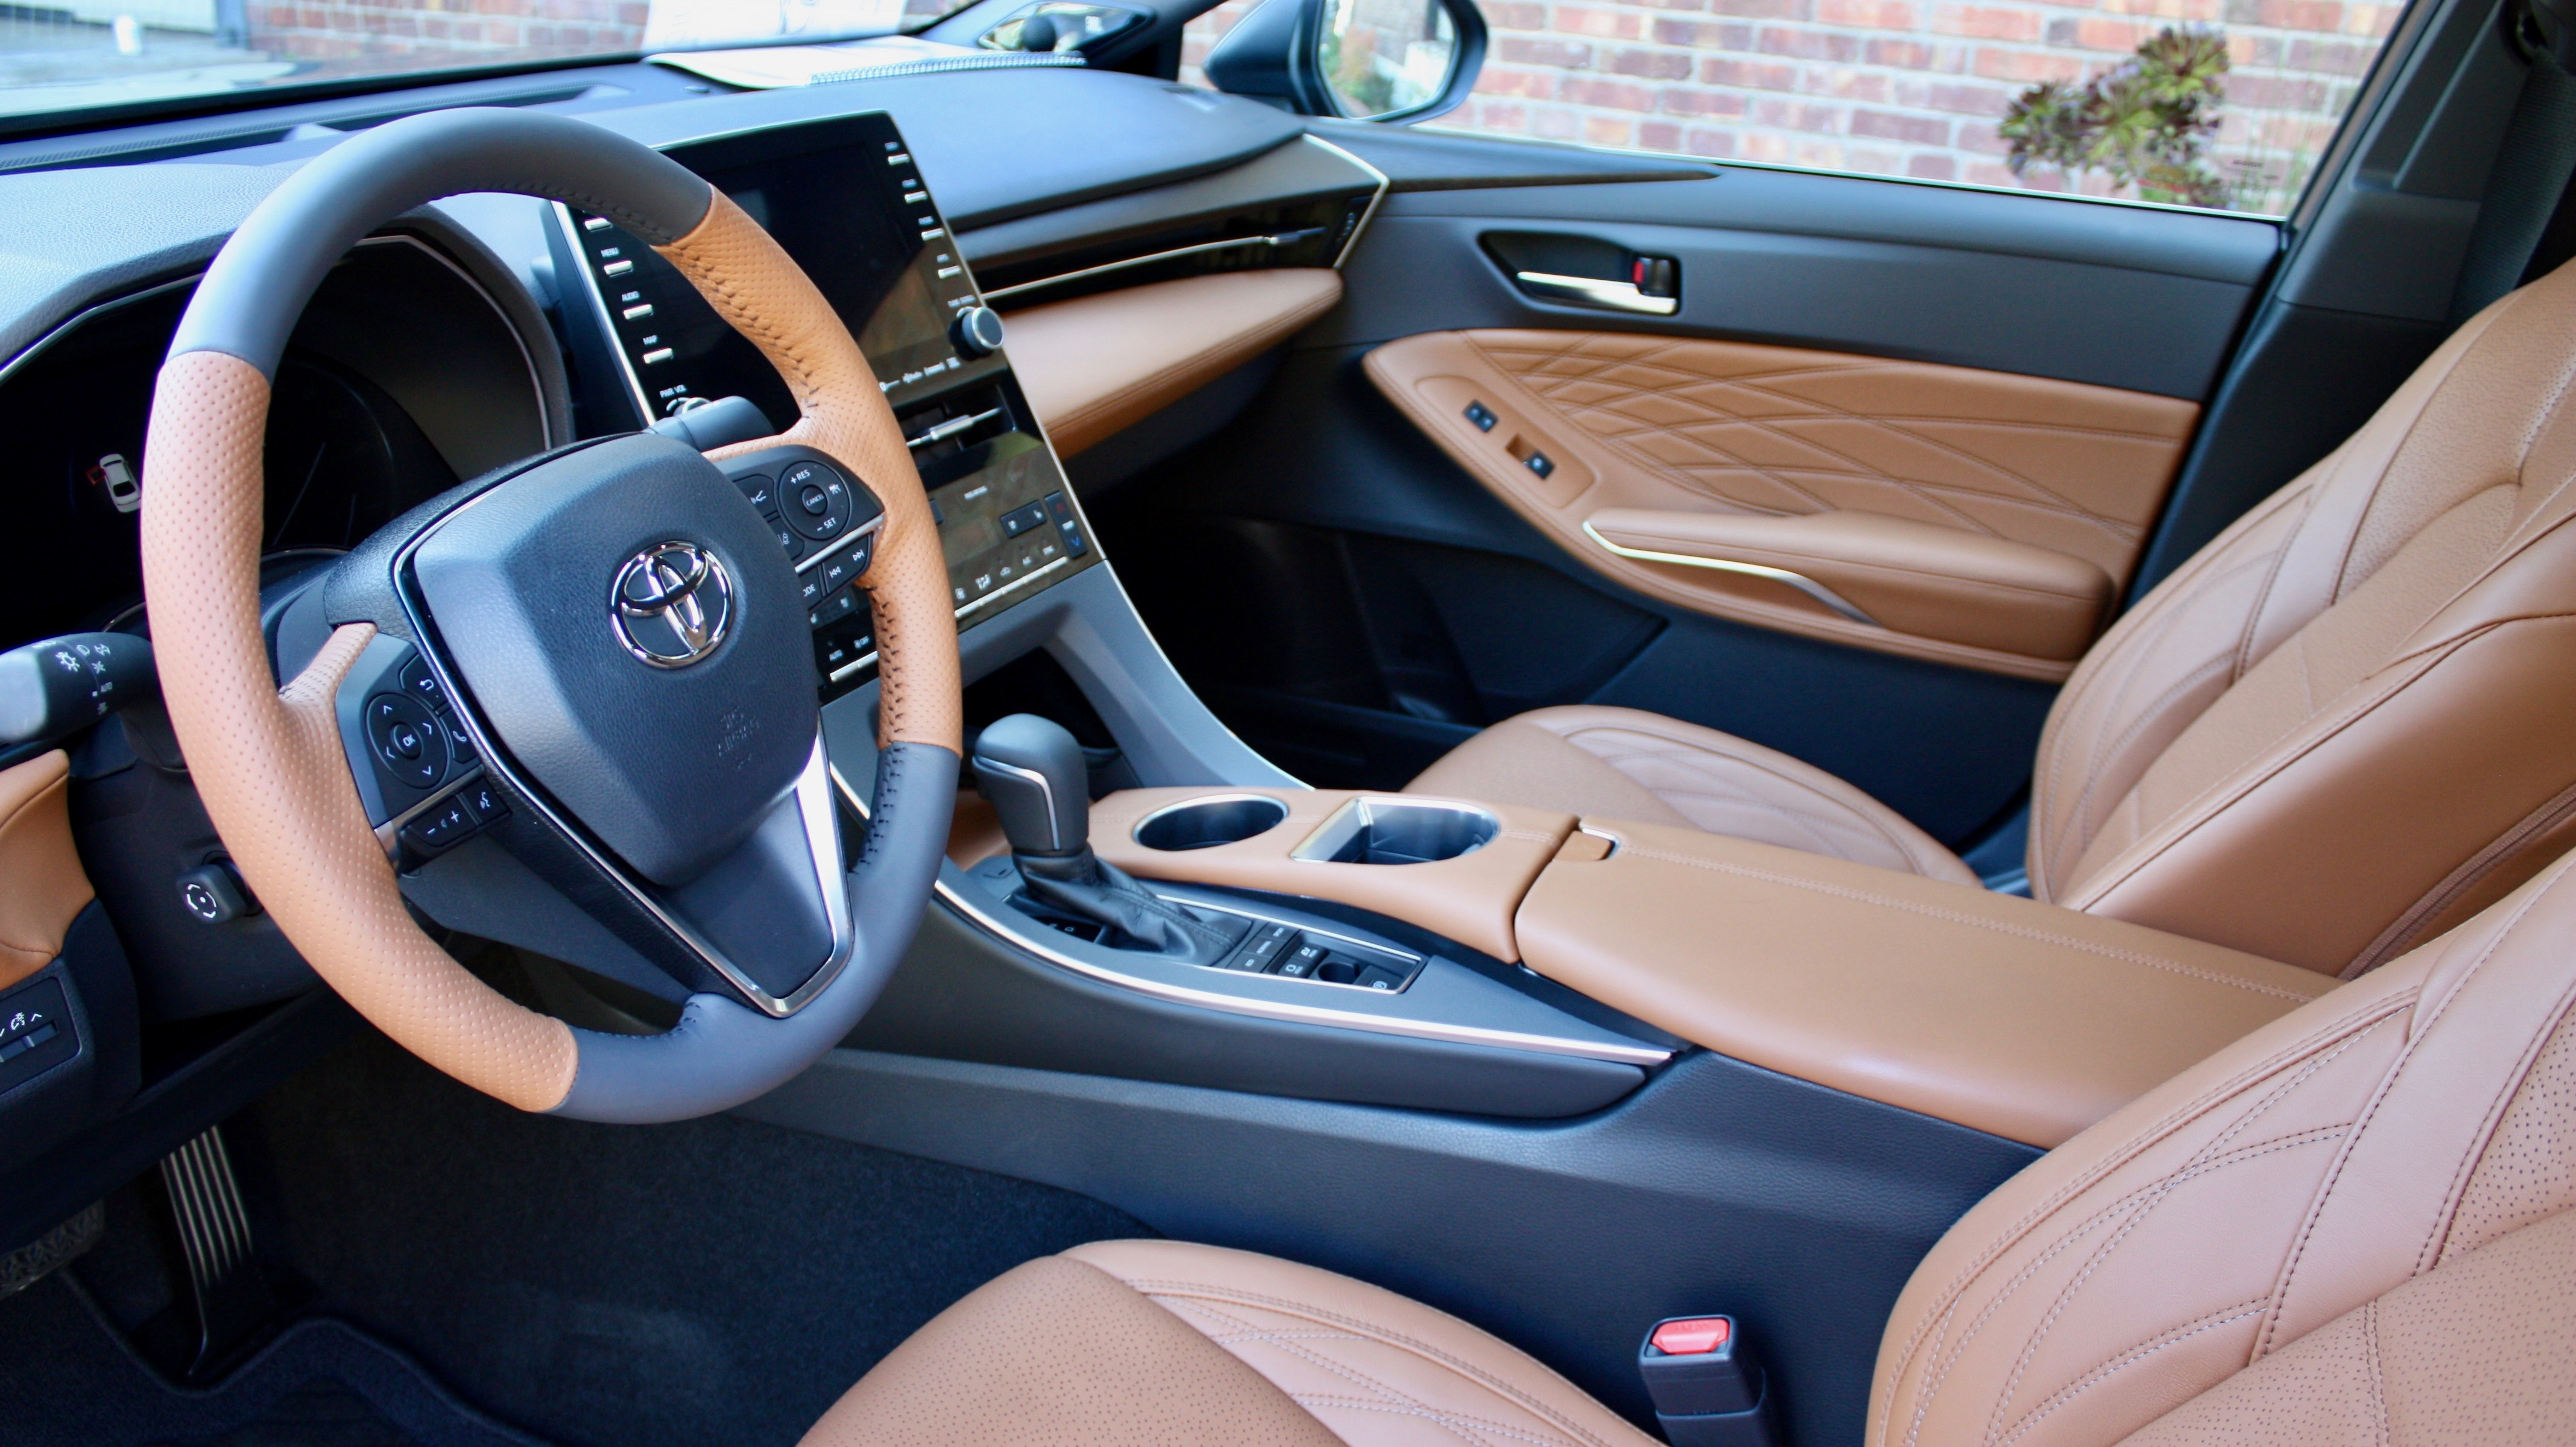 The 2019 Toyota Avalon S Interior Looks Fantastic Pictures